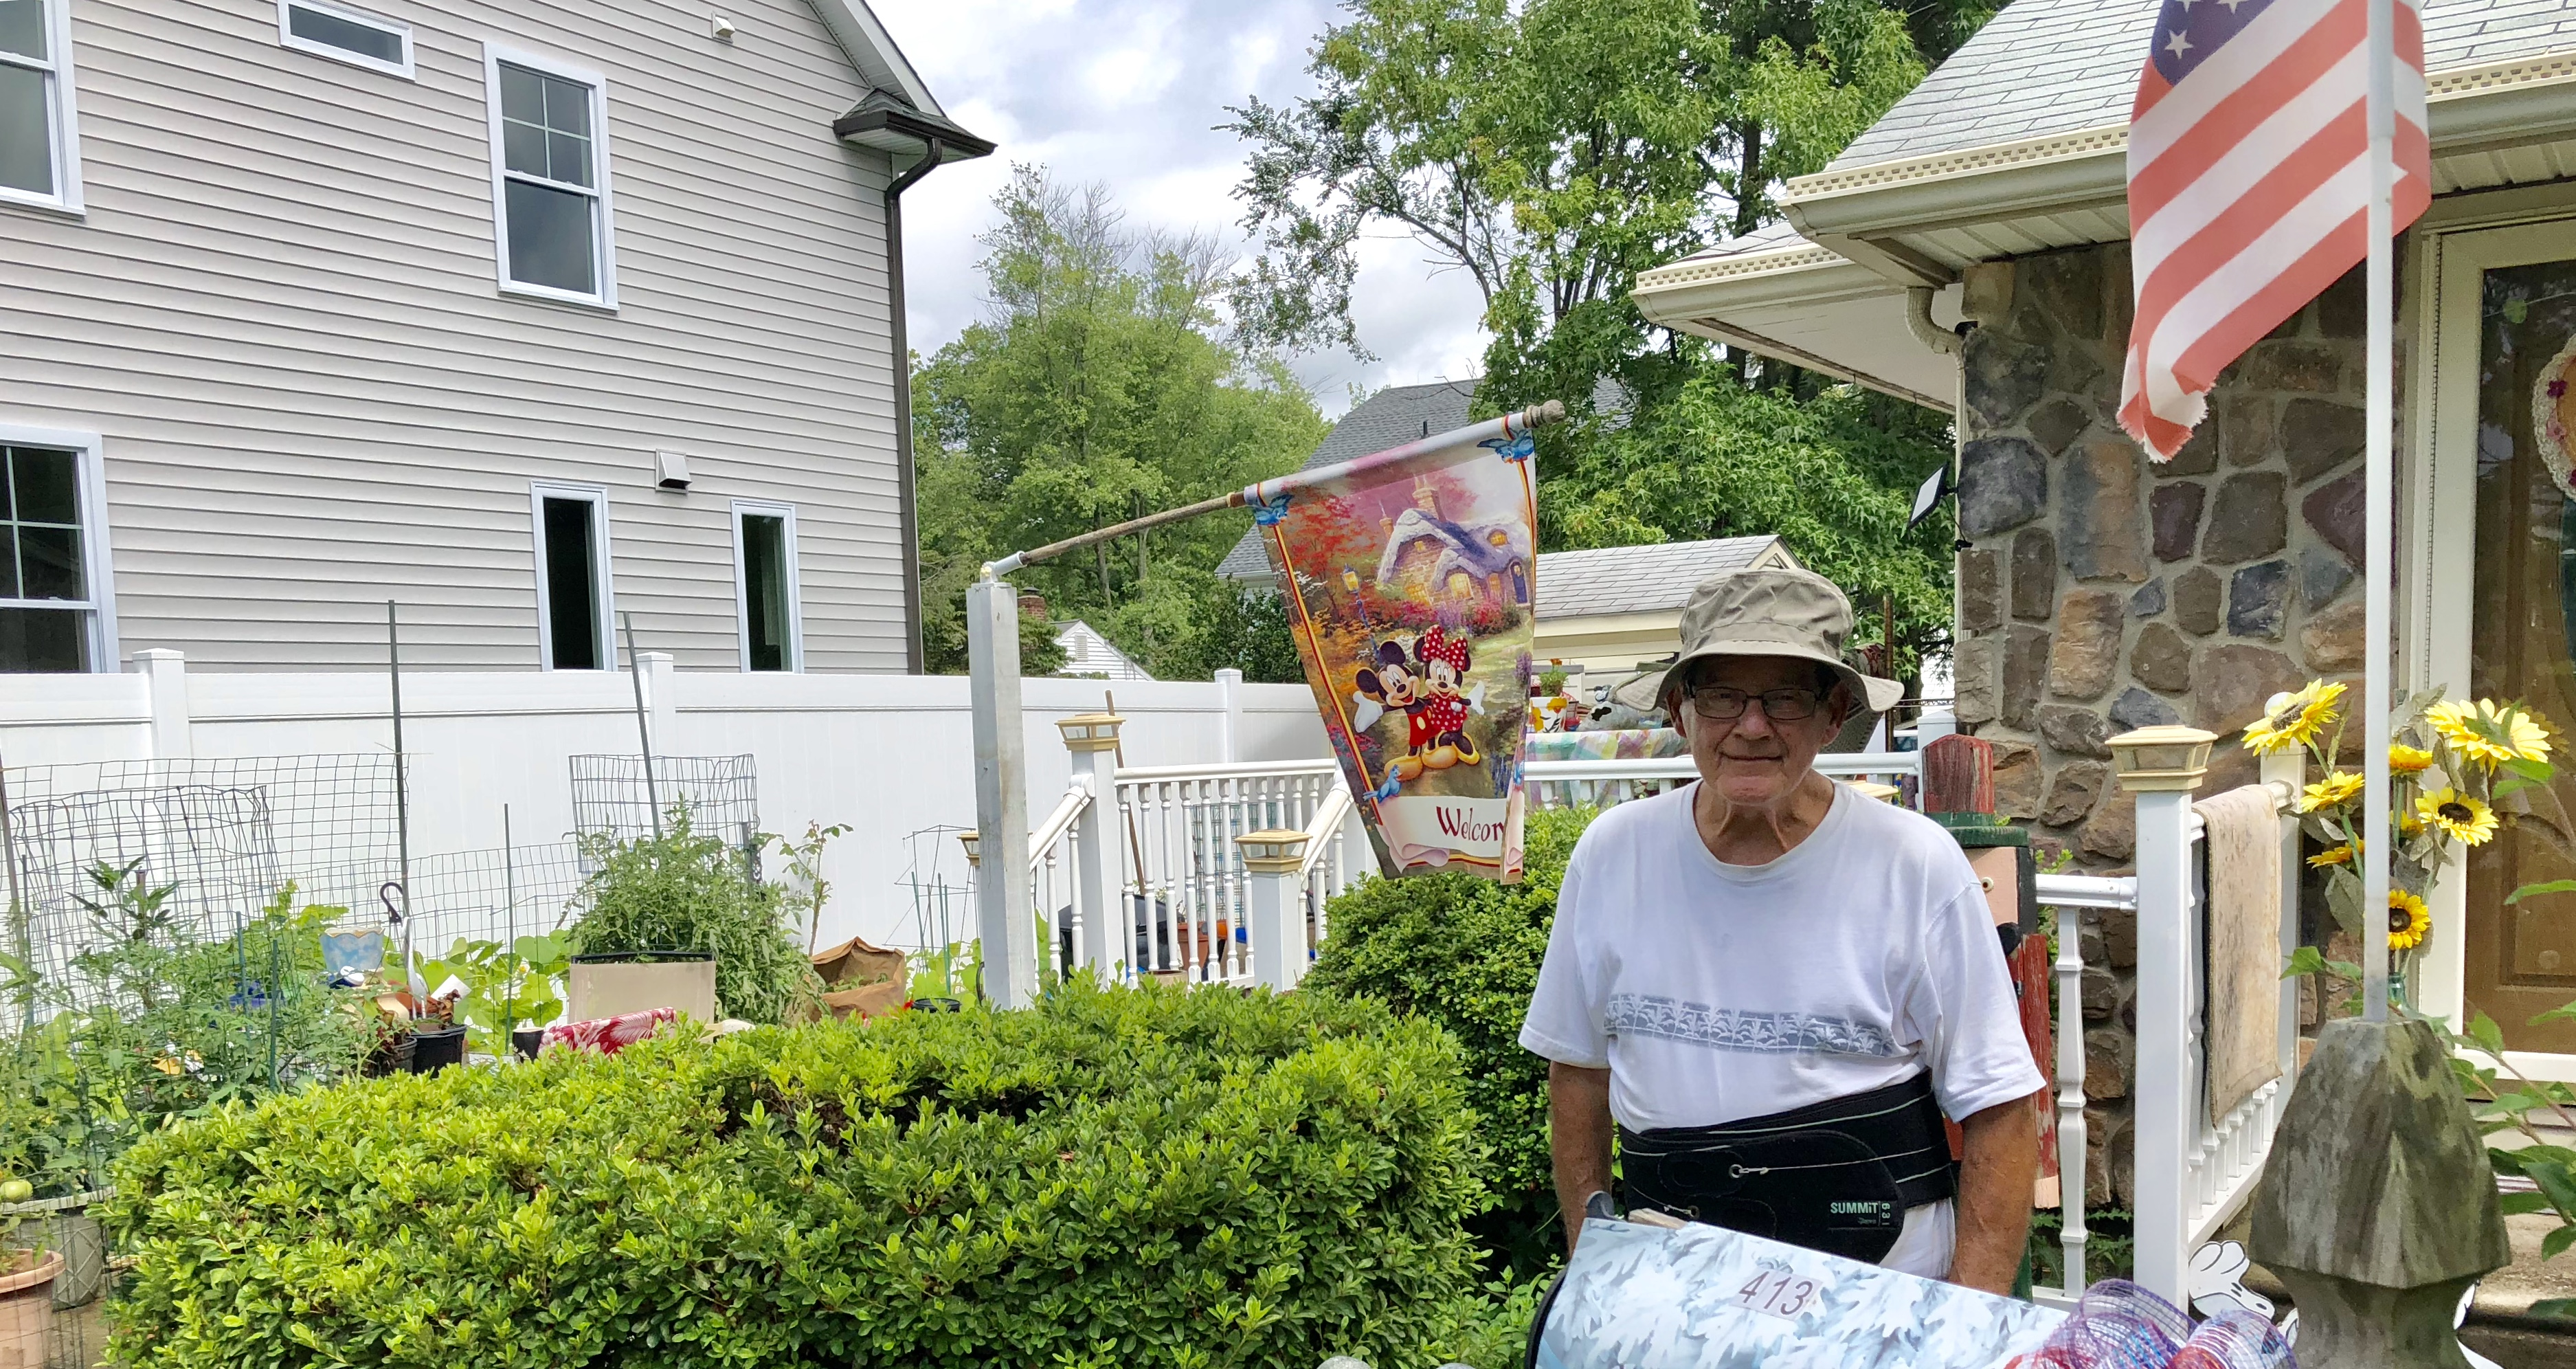 Jerry Macnamara and his wife Sandy moved into their ranch house in the Fargo section of Haddonfield 51 years ago. The rancher next door recently was replaced by a much larger home, as has been the case elsewhere in the neighborhood and in the borough.